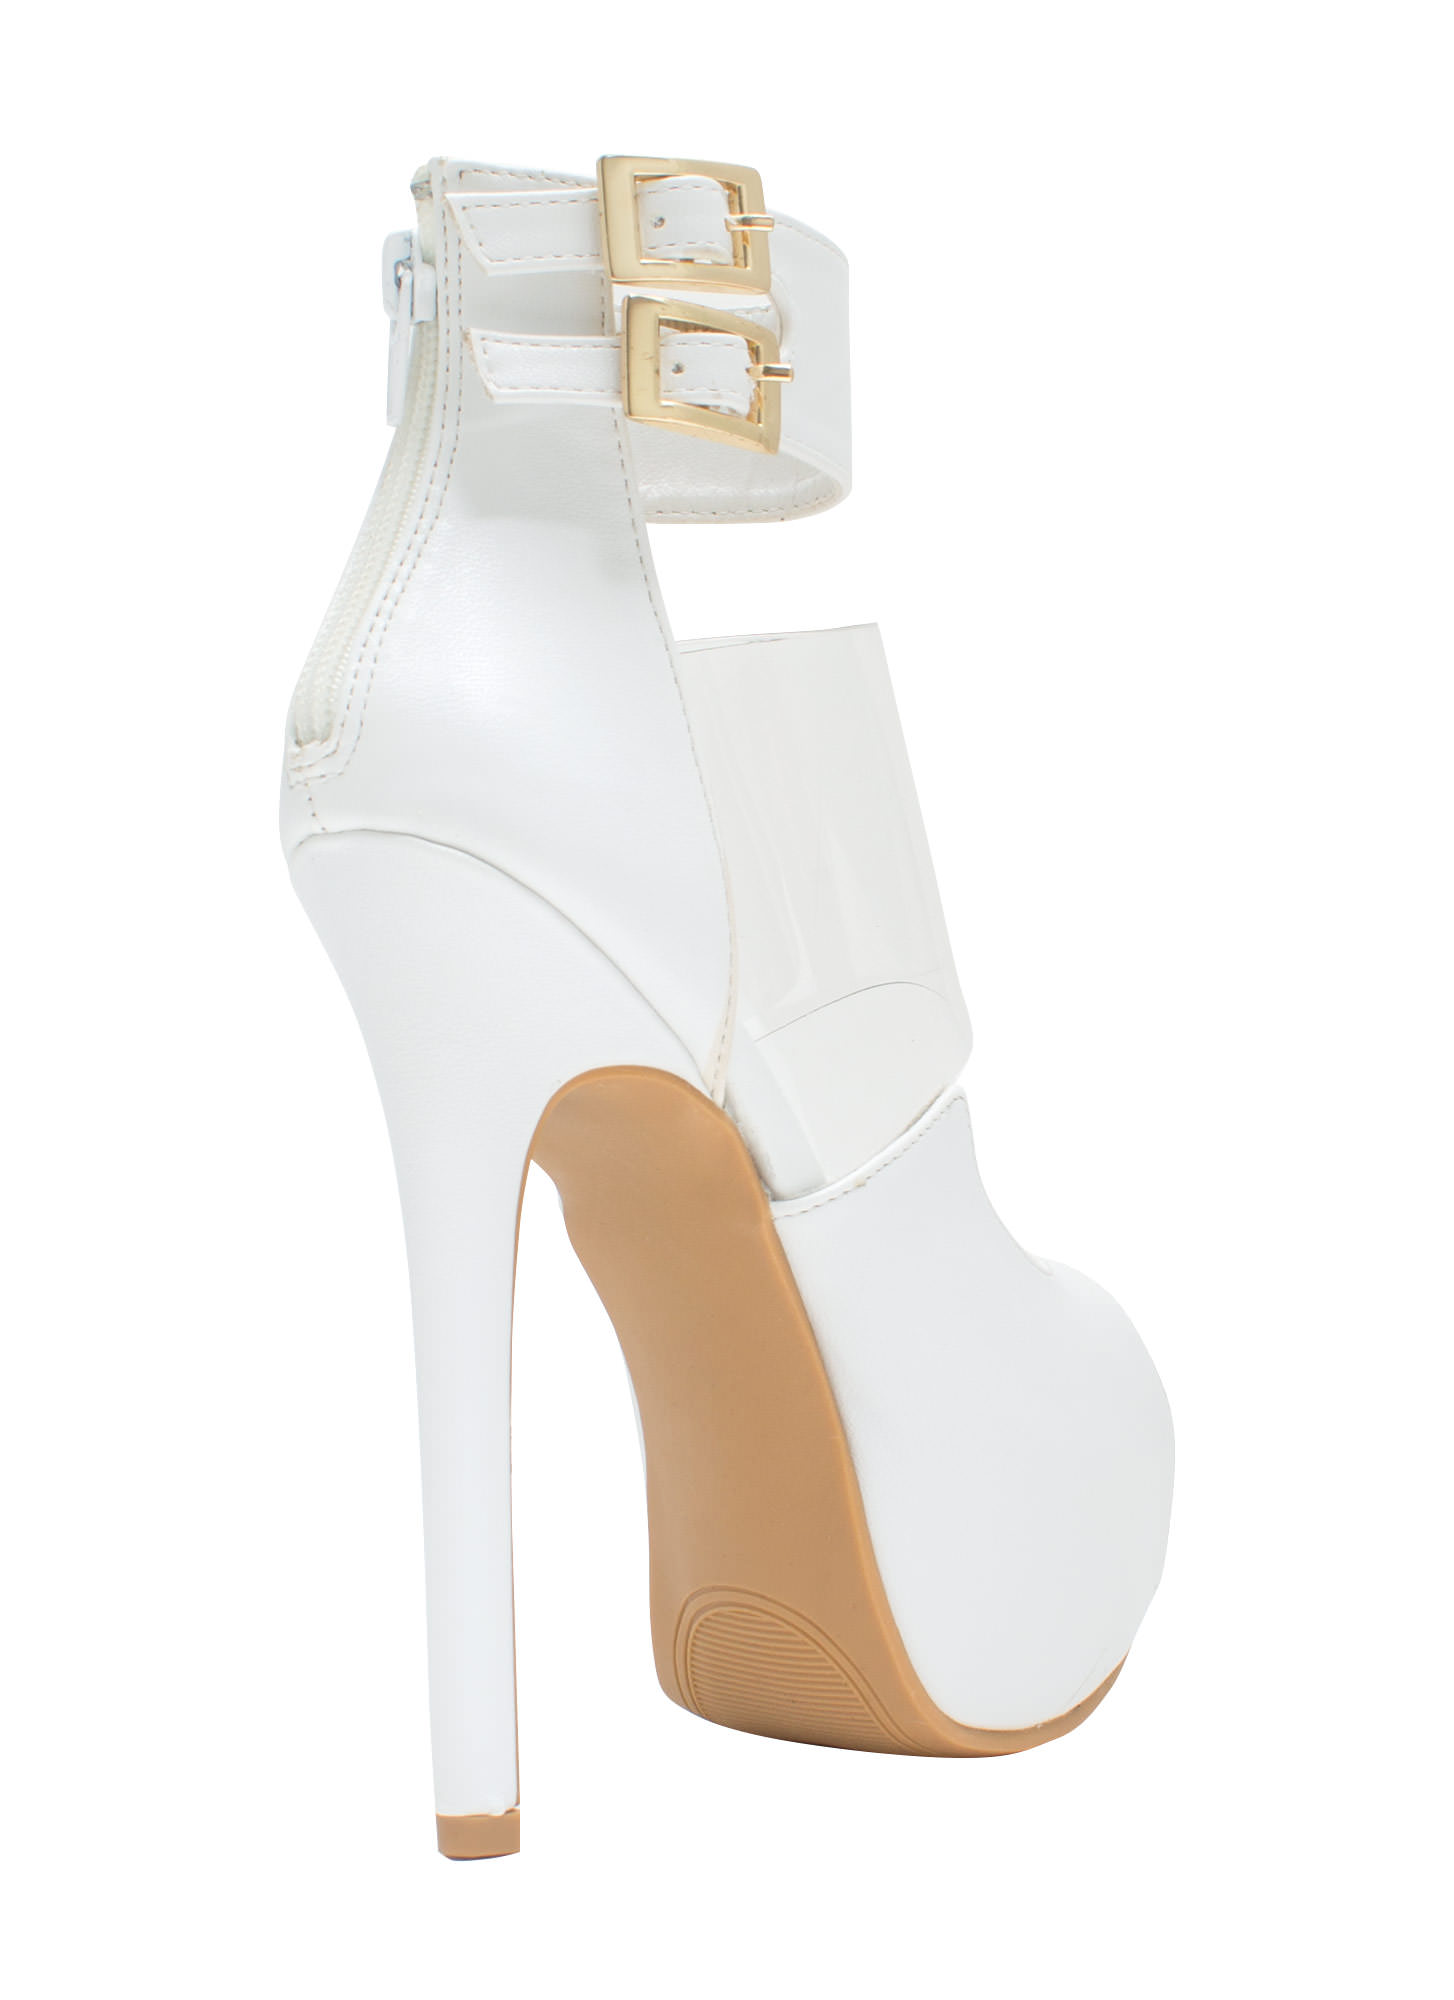 PVC You Soon In Peep-Toe Platforms WHITE